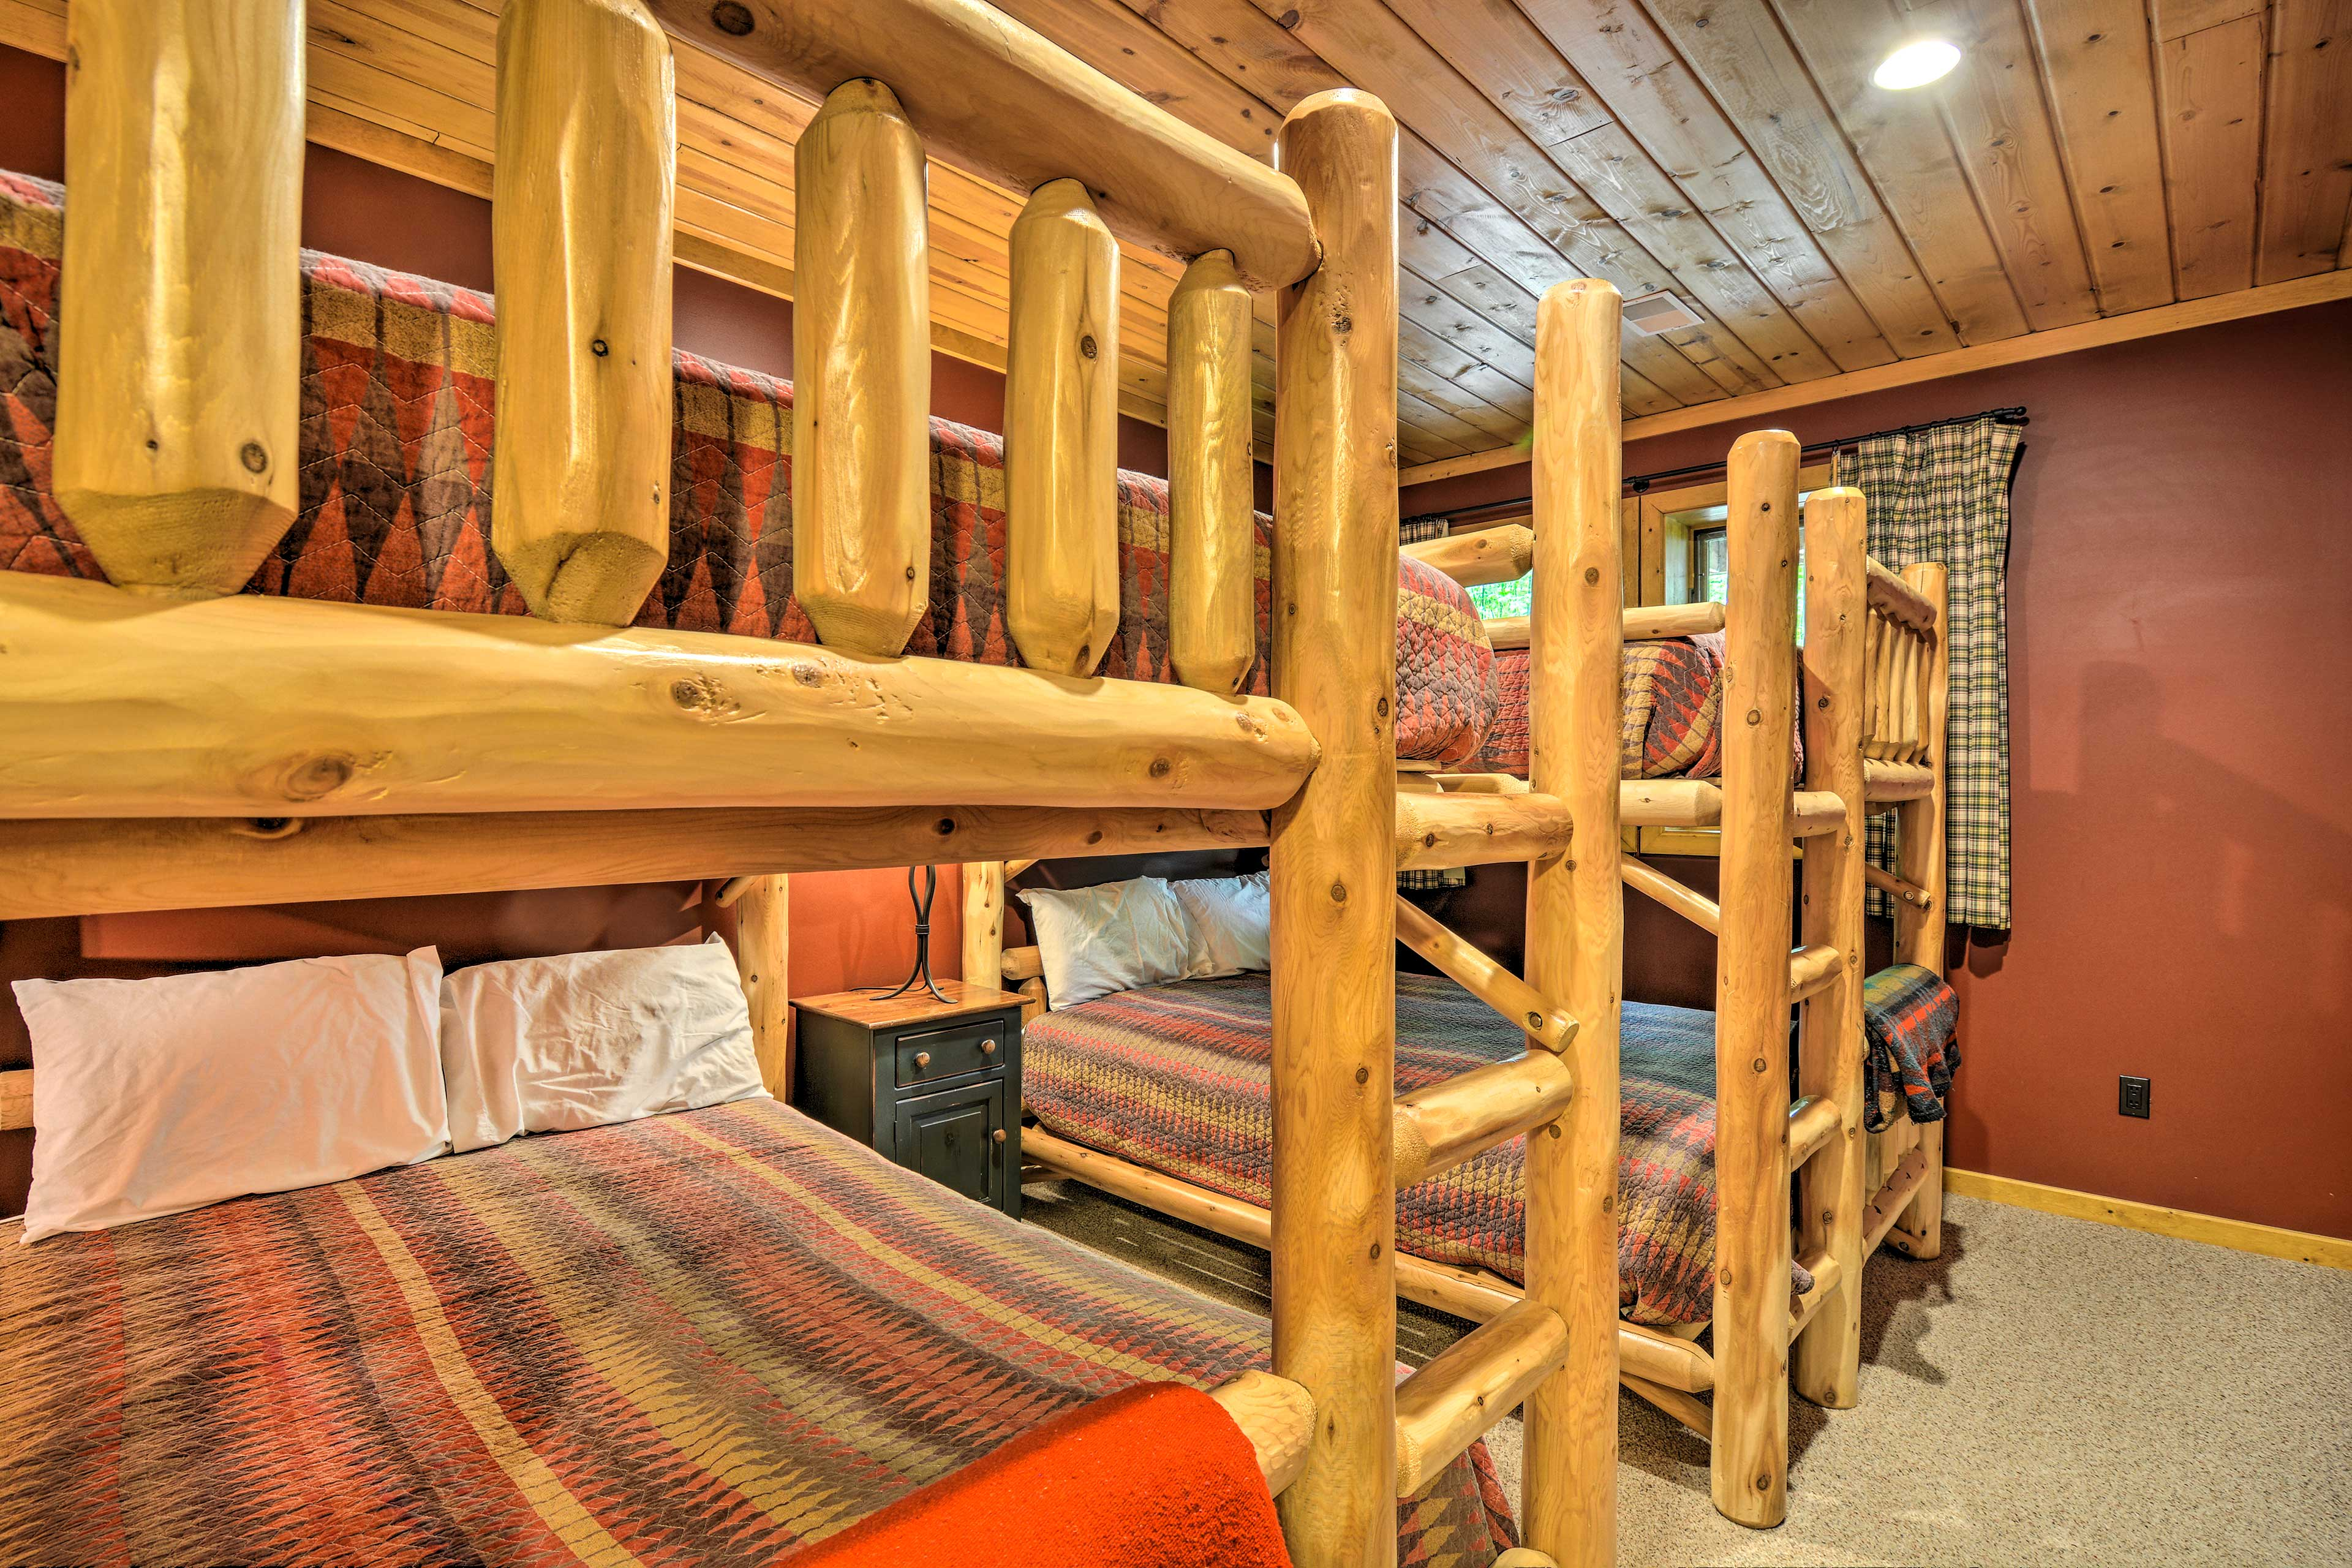 With 2 queen-sized bunk beds, this room can sleep 8.